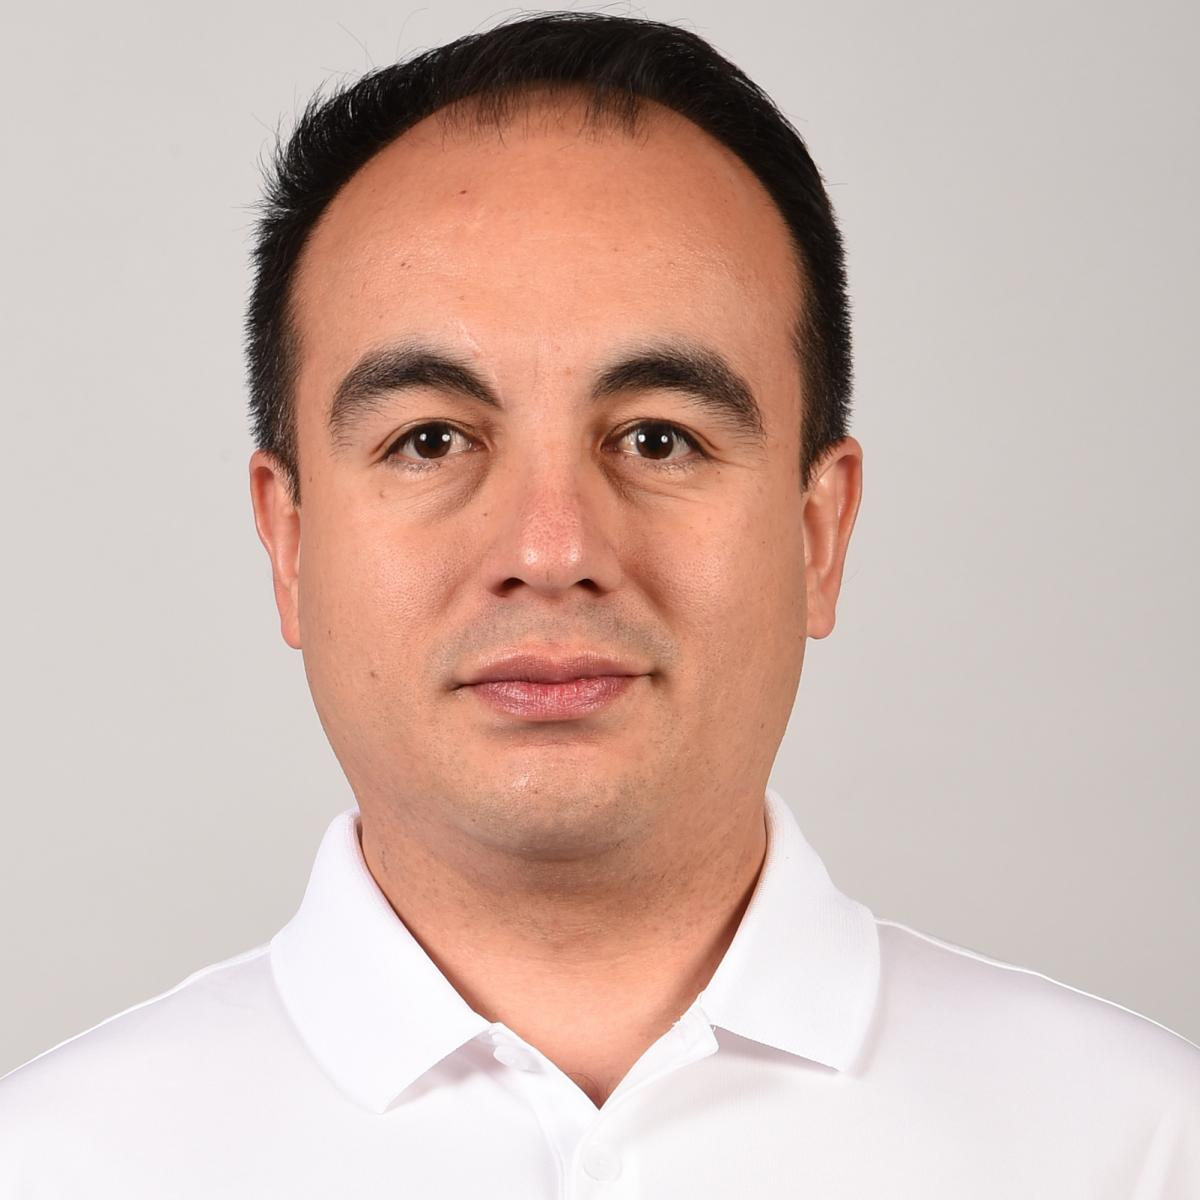 Rockets Rumors: Executive Gersson Rosas Emerging as Hornets GM Candidate